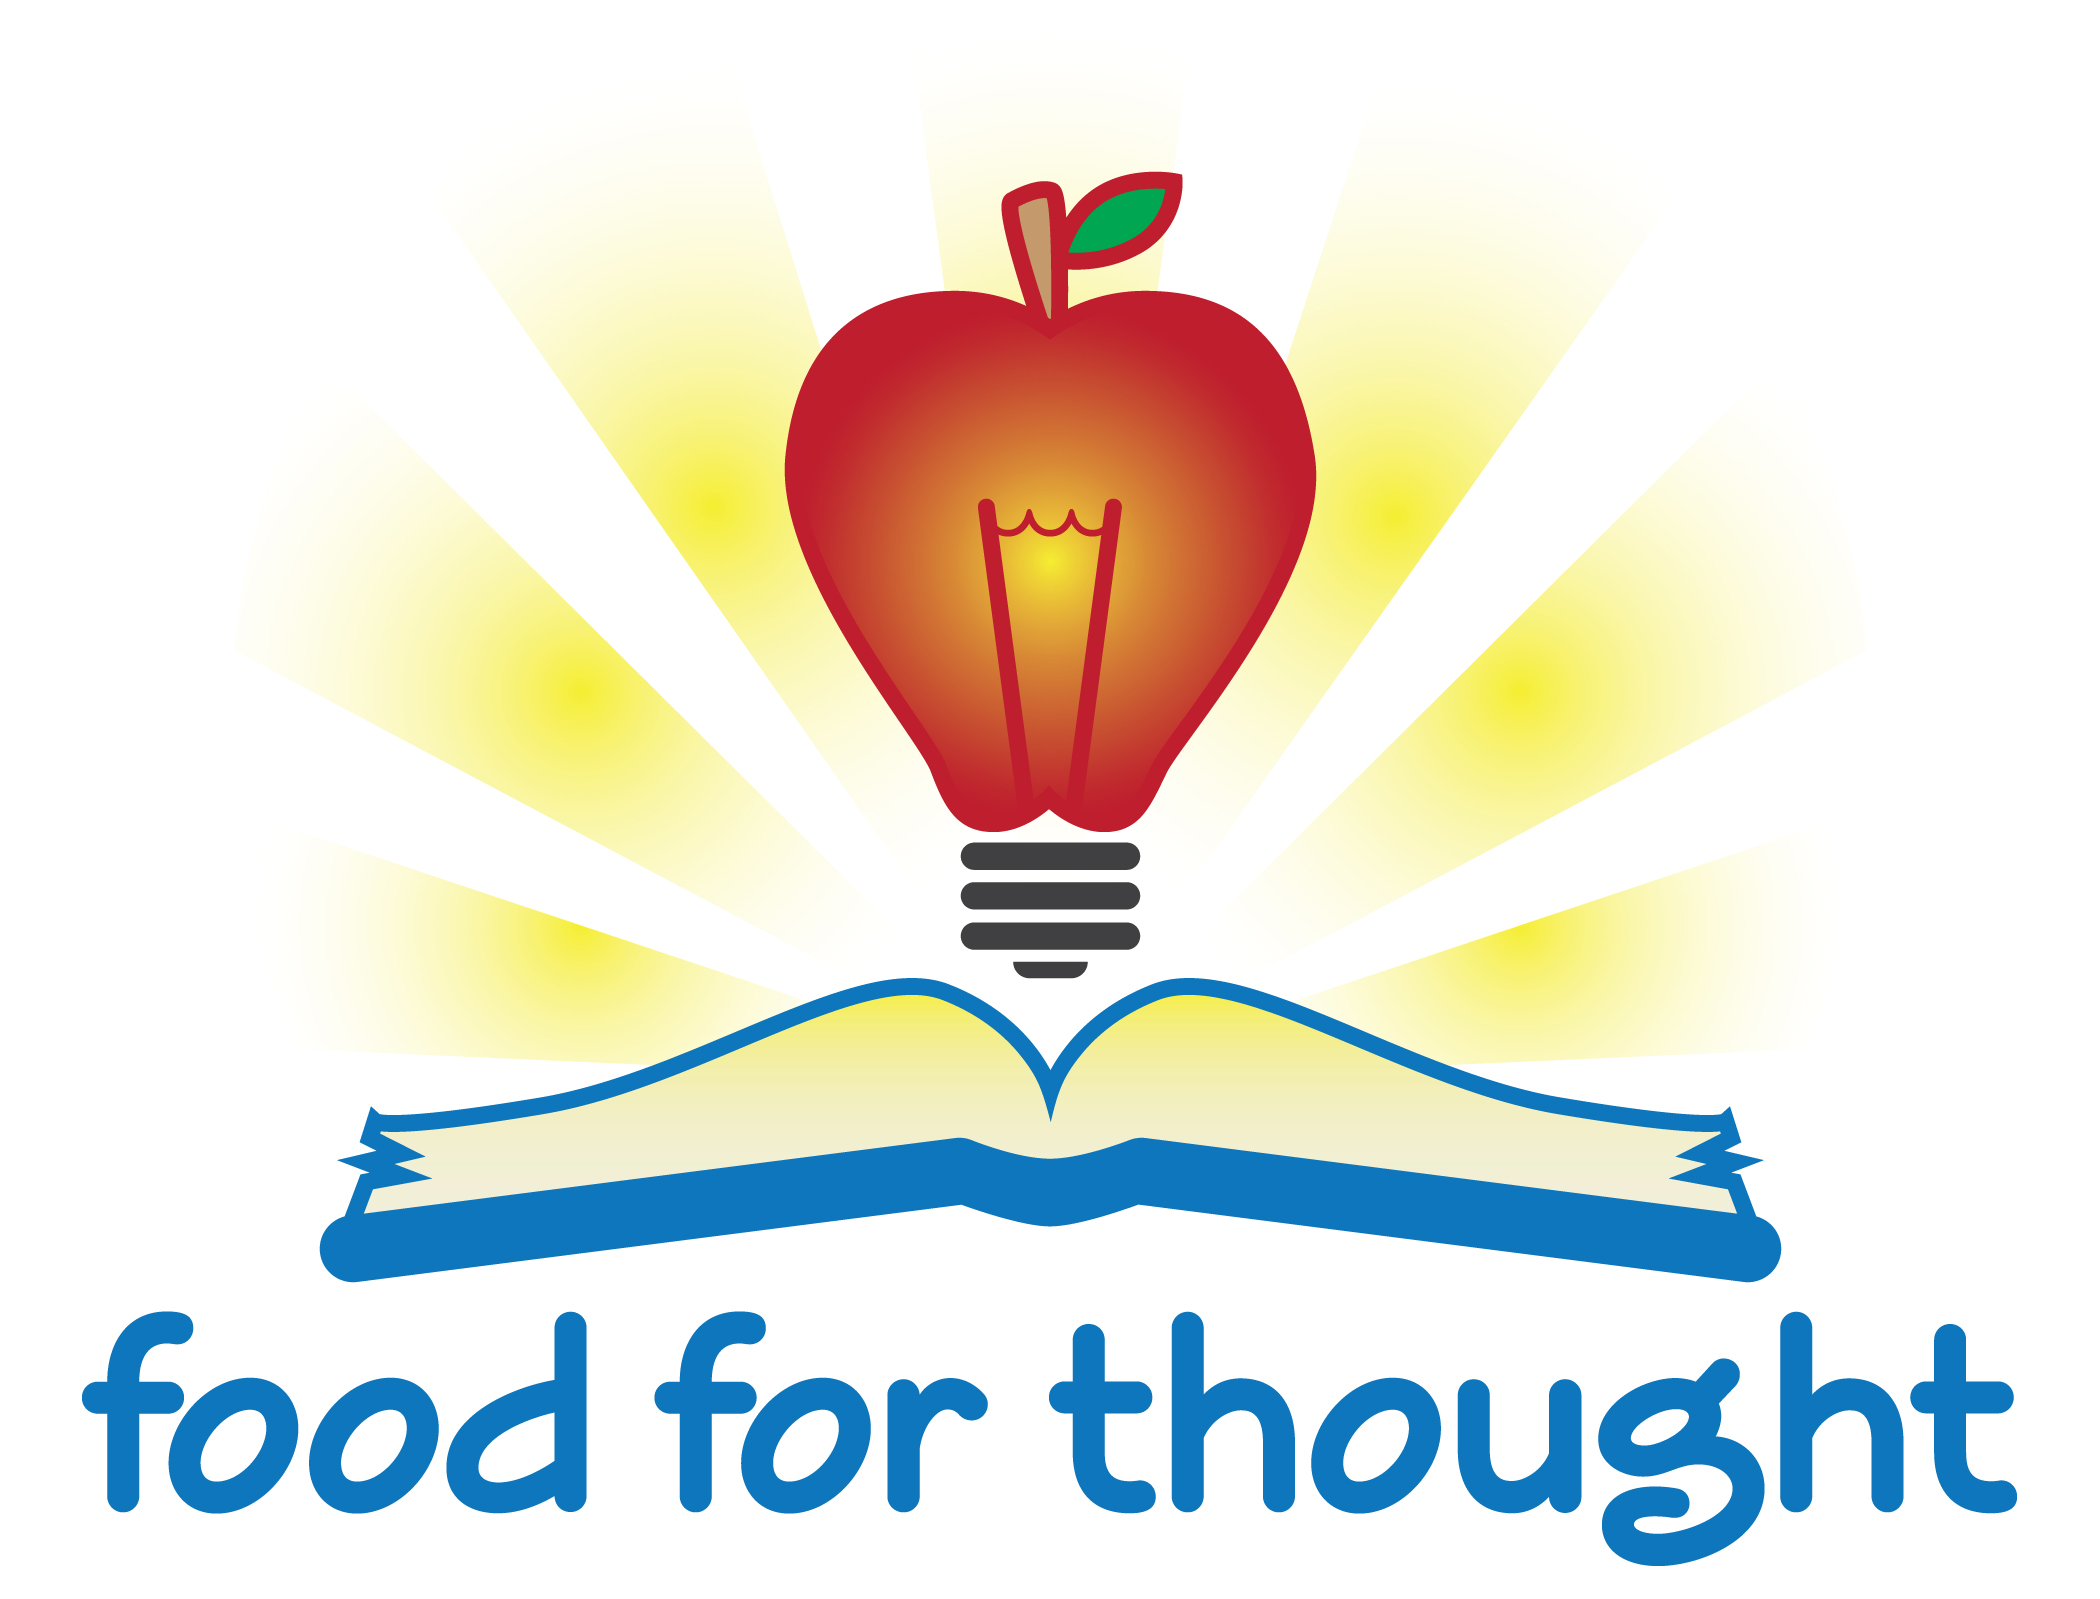 Food for thought clipart banner royalty free library Food for A – Free wallpaper download banner royalty free library